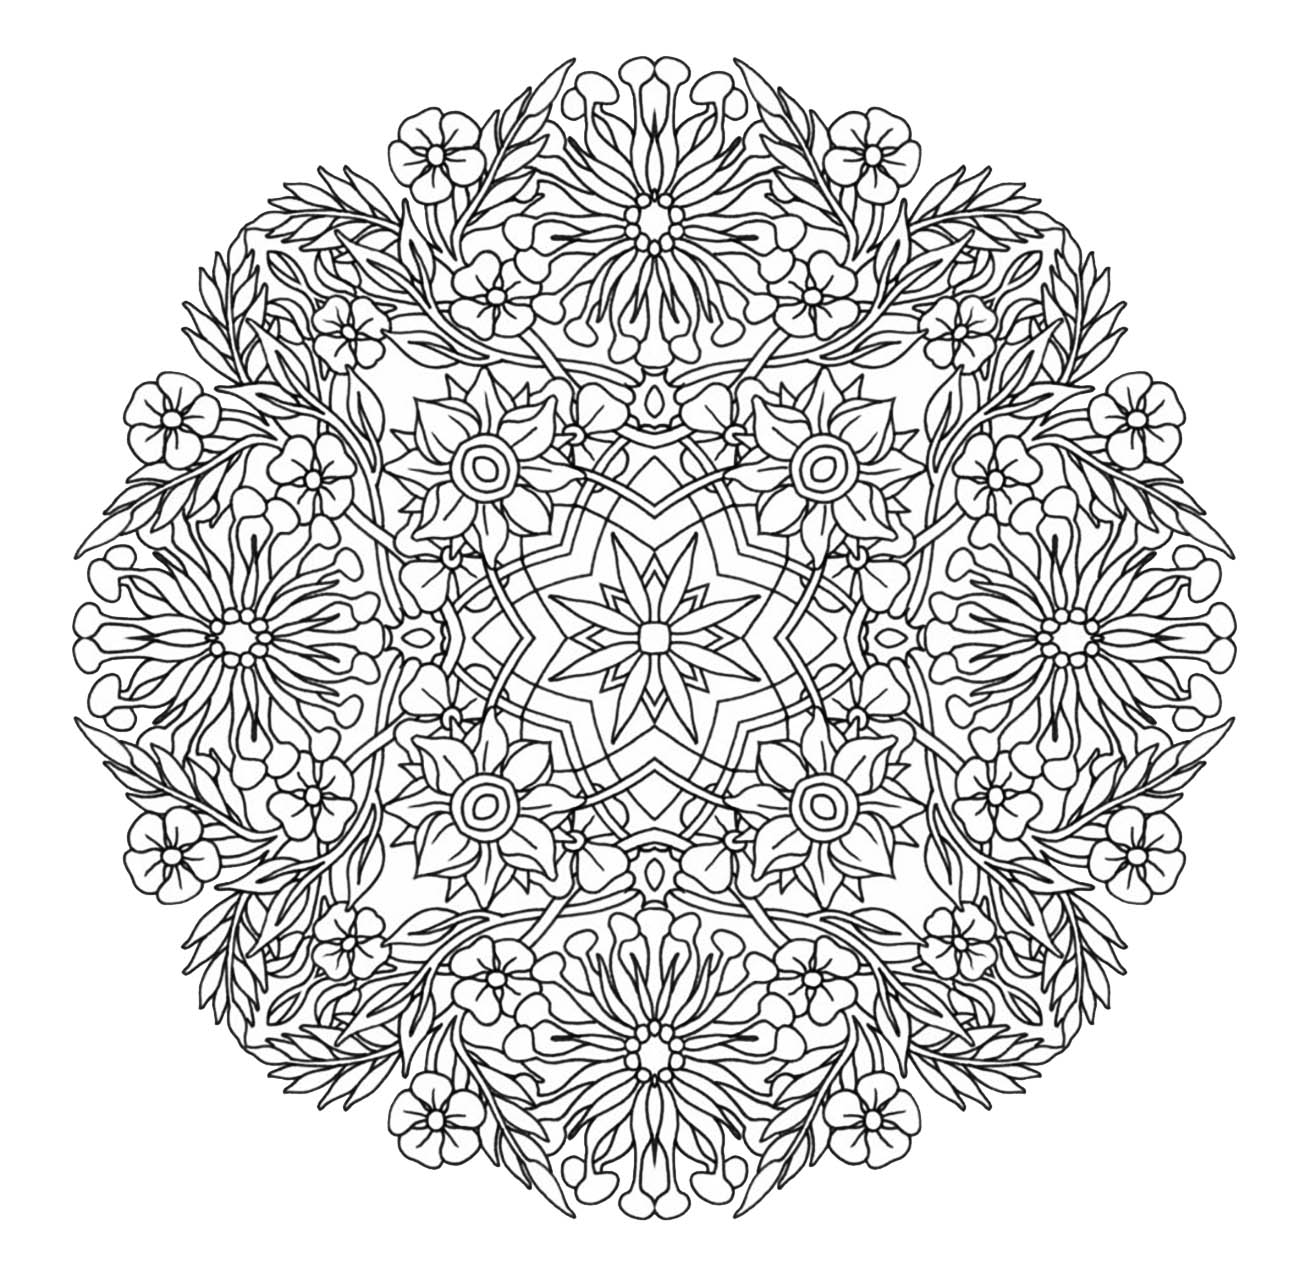 Unique mandala coloring pages - Mandala To Download In Pdf 9